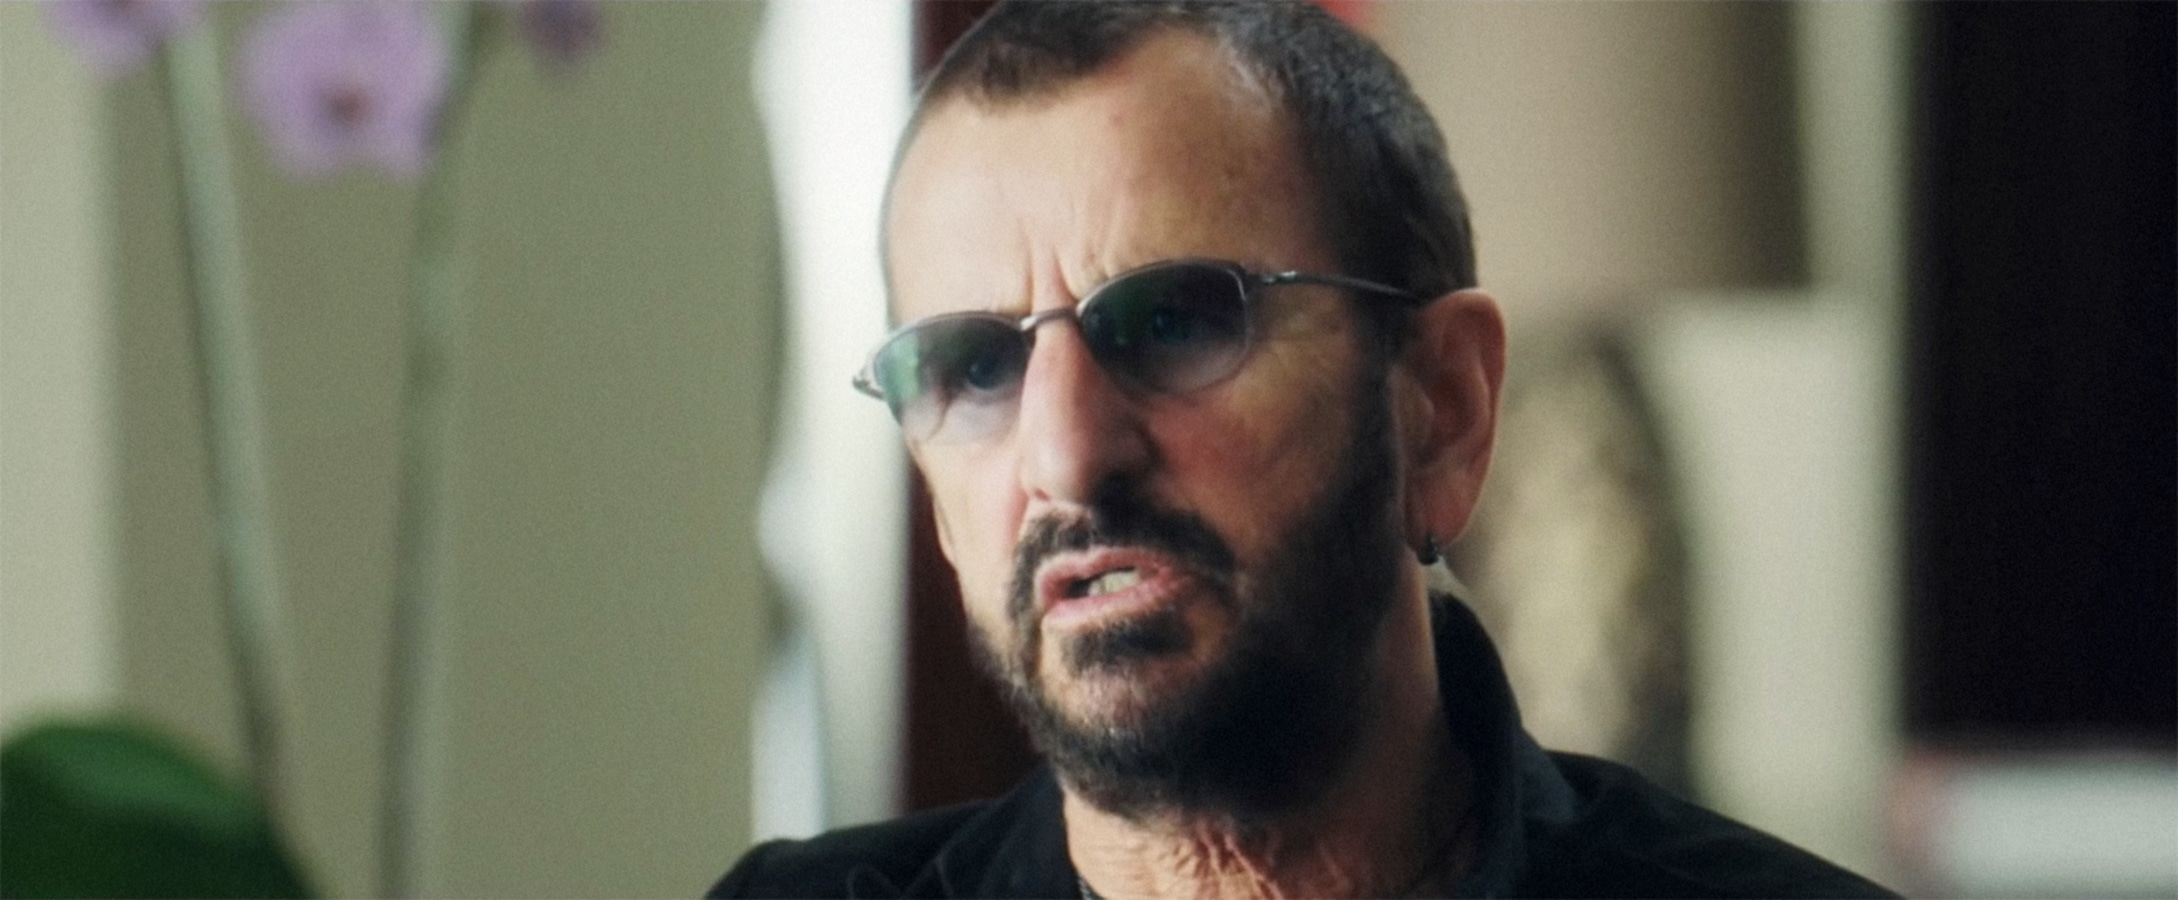 THE BEATLES: EIGHT DAYS A WEEK - THE TOURING YEARS, Ringo Starr